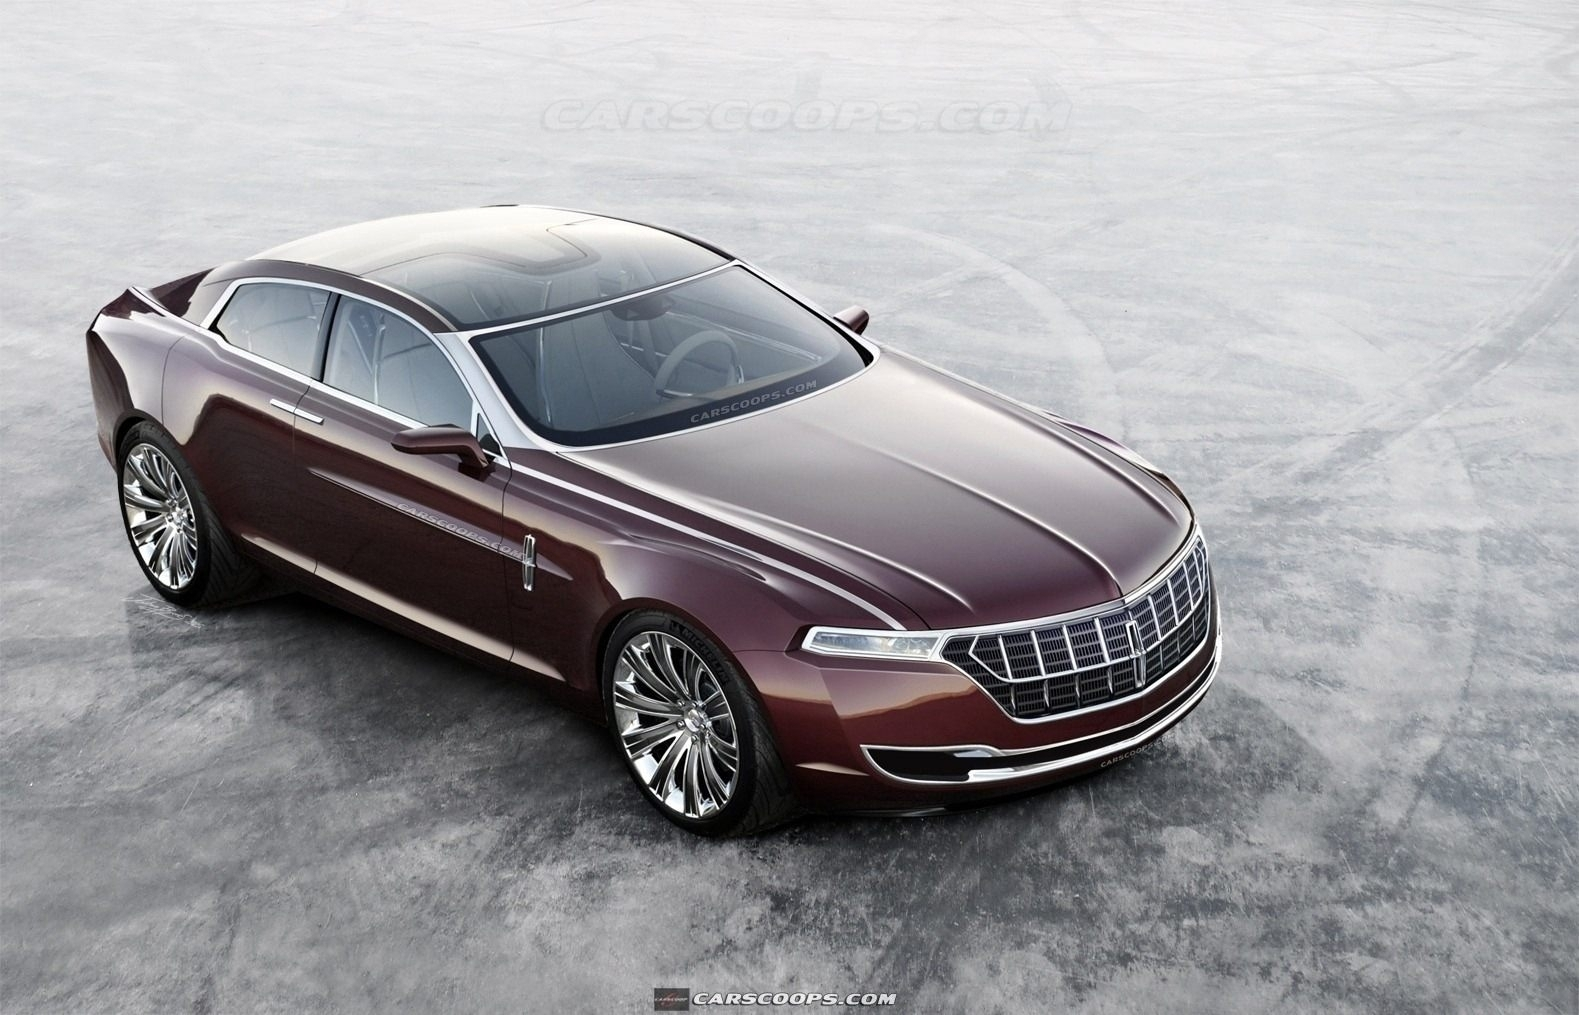 54 A Spy Shots Lincoln Mkz Sedan Reviews